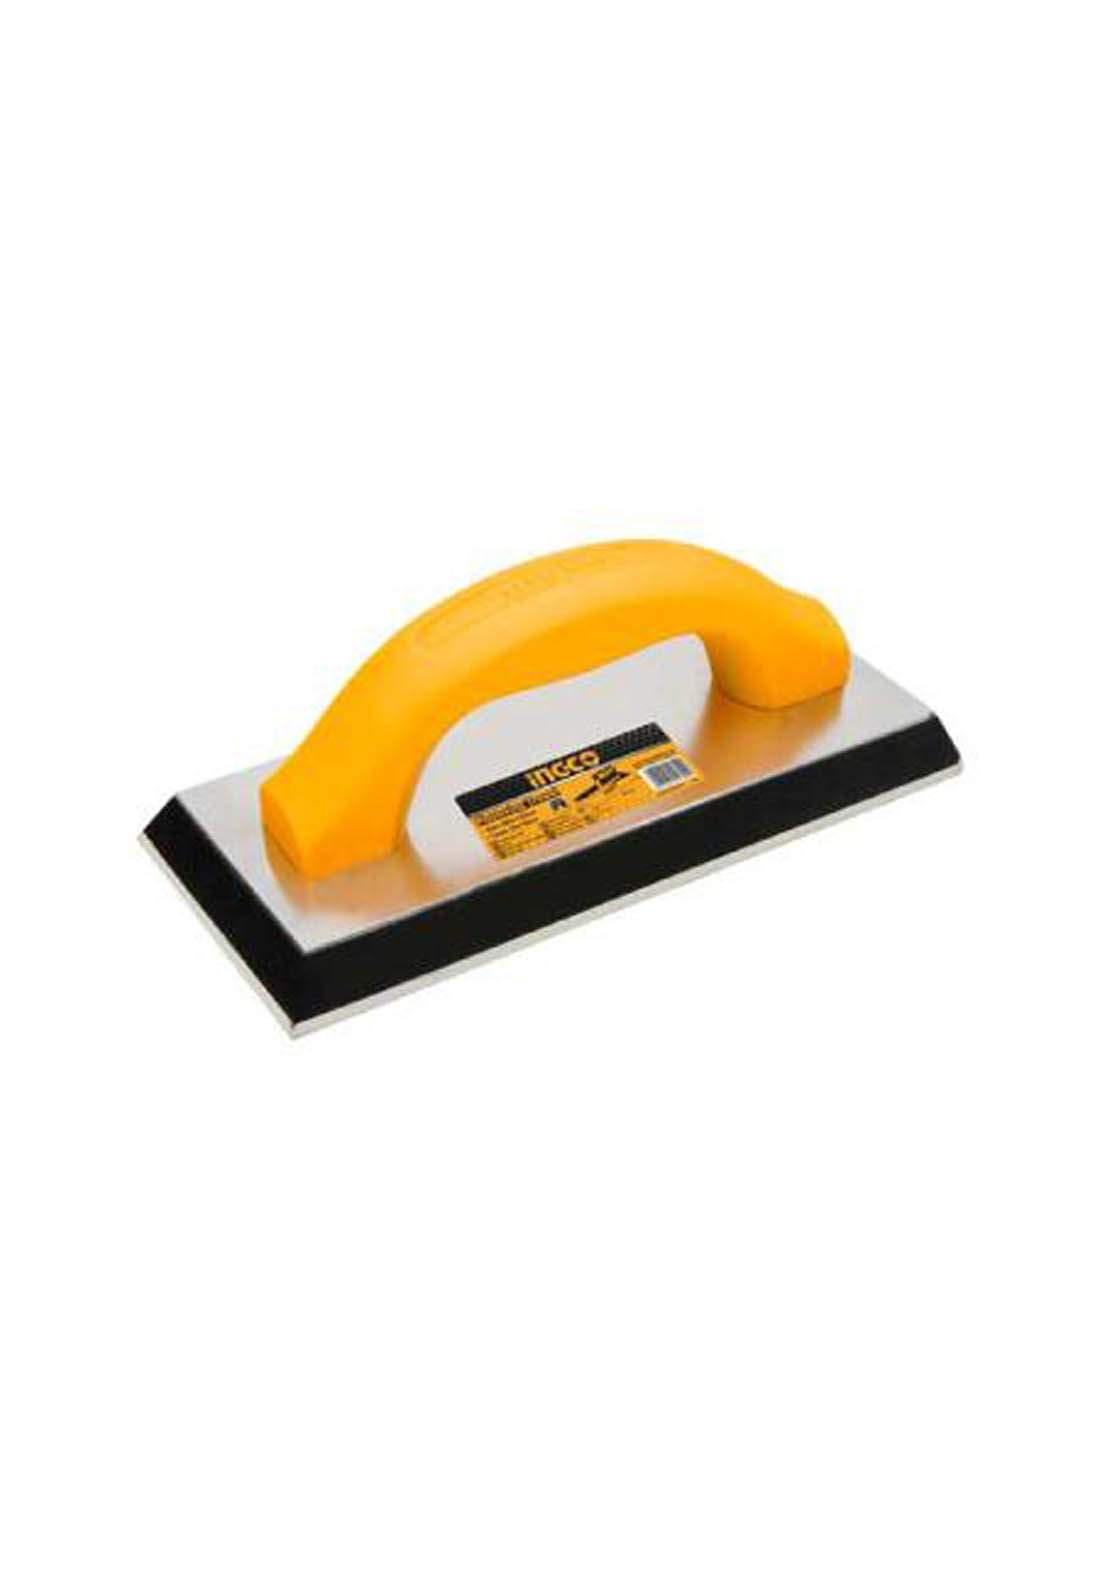 Ingco HSFR24108 Scaling trowel with a plastic hand مالج سقل